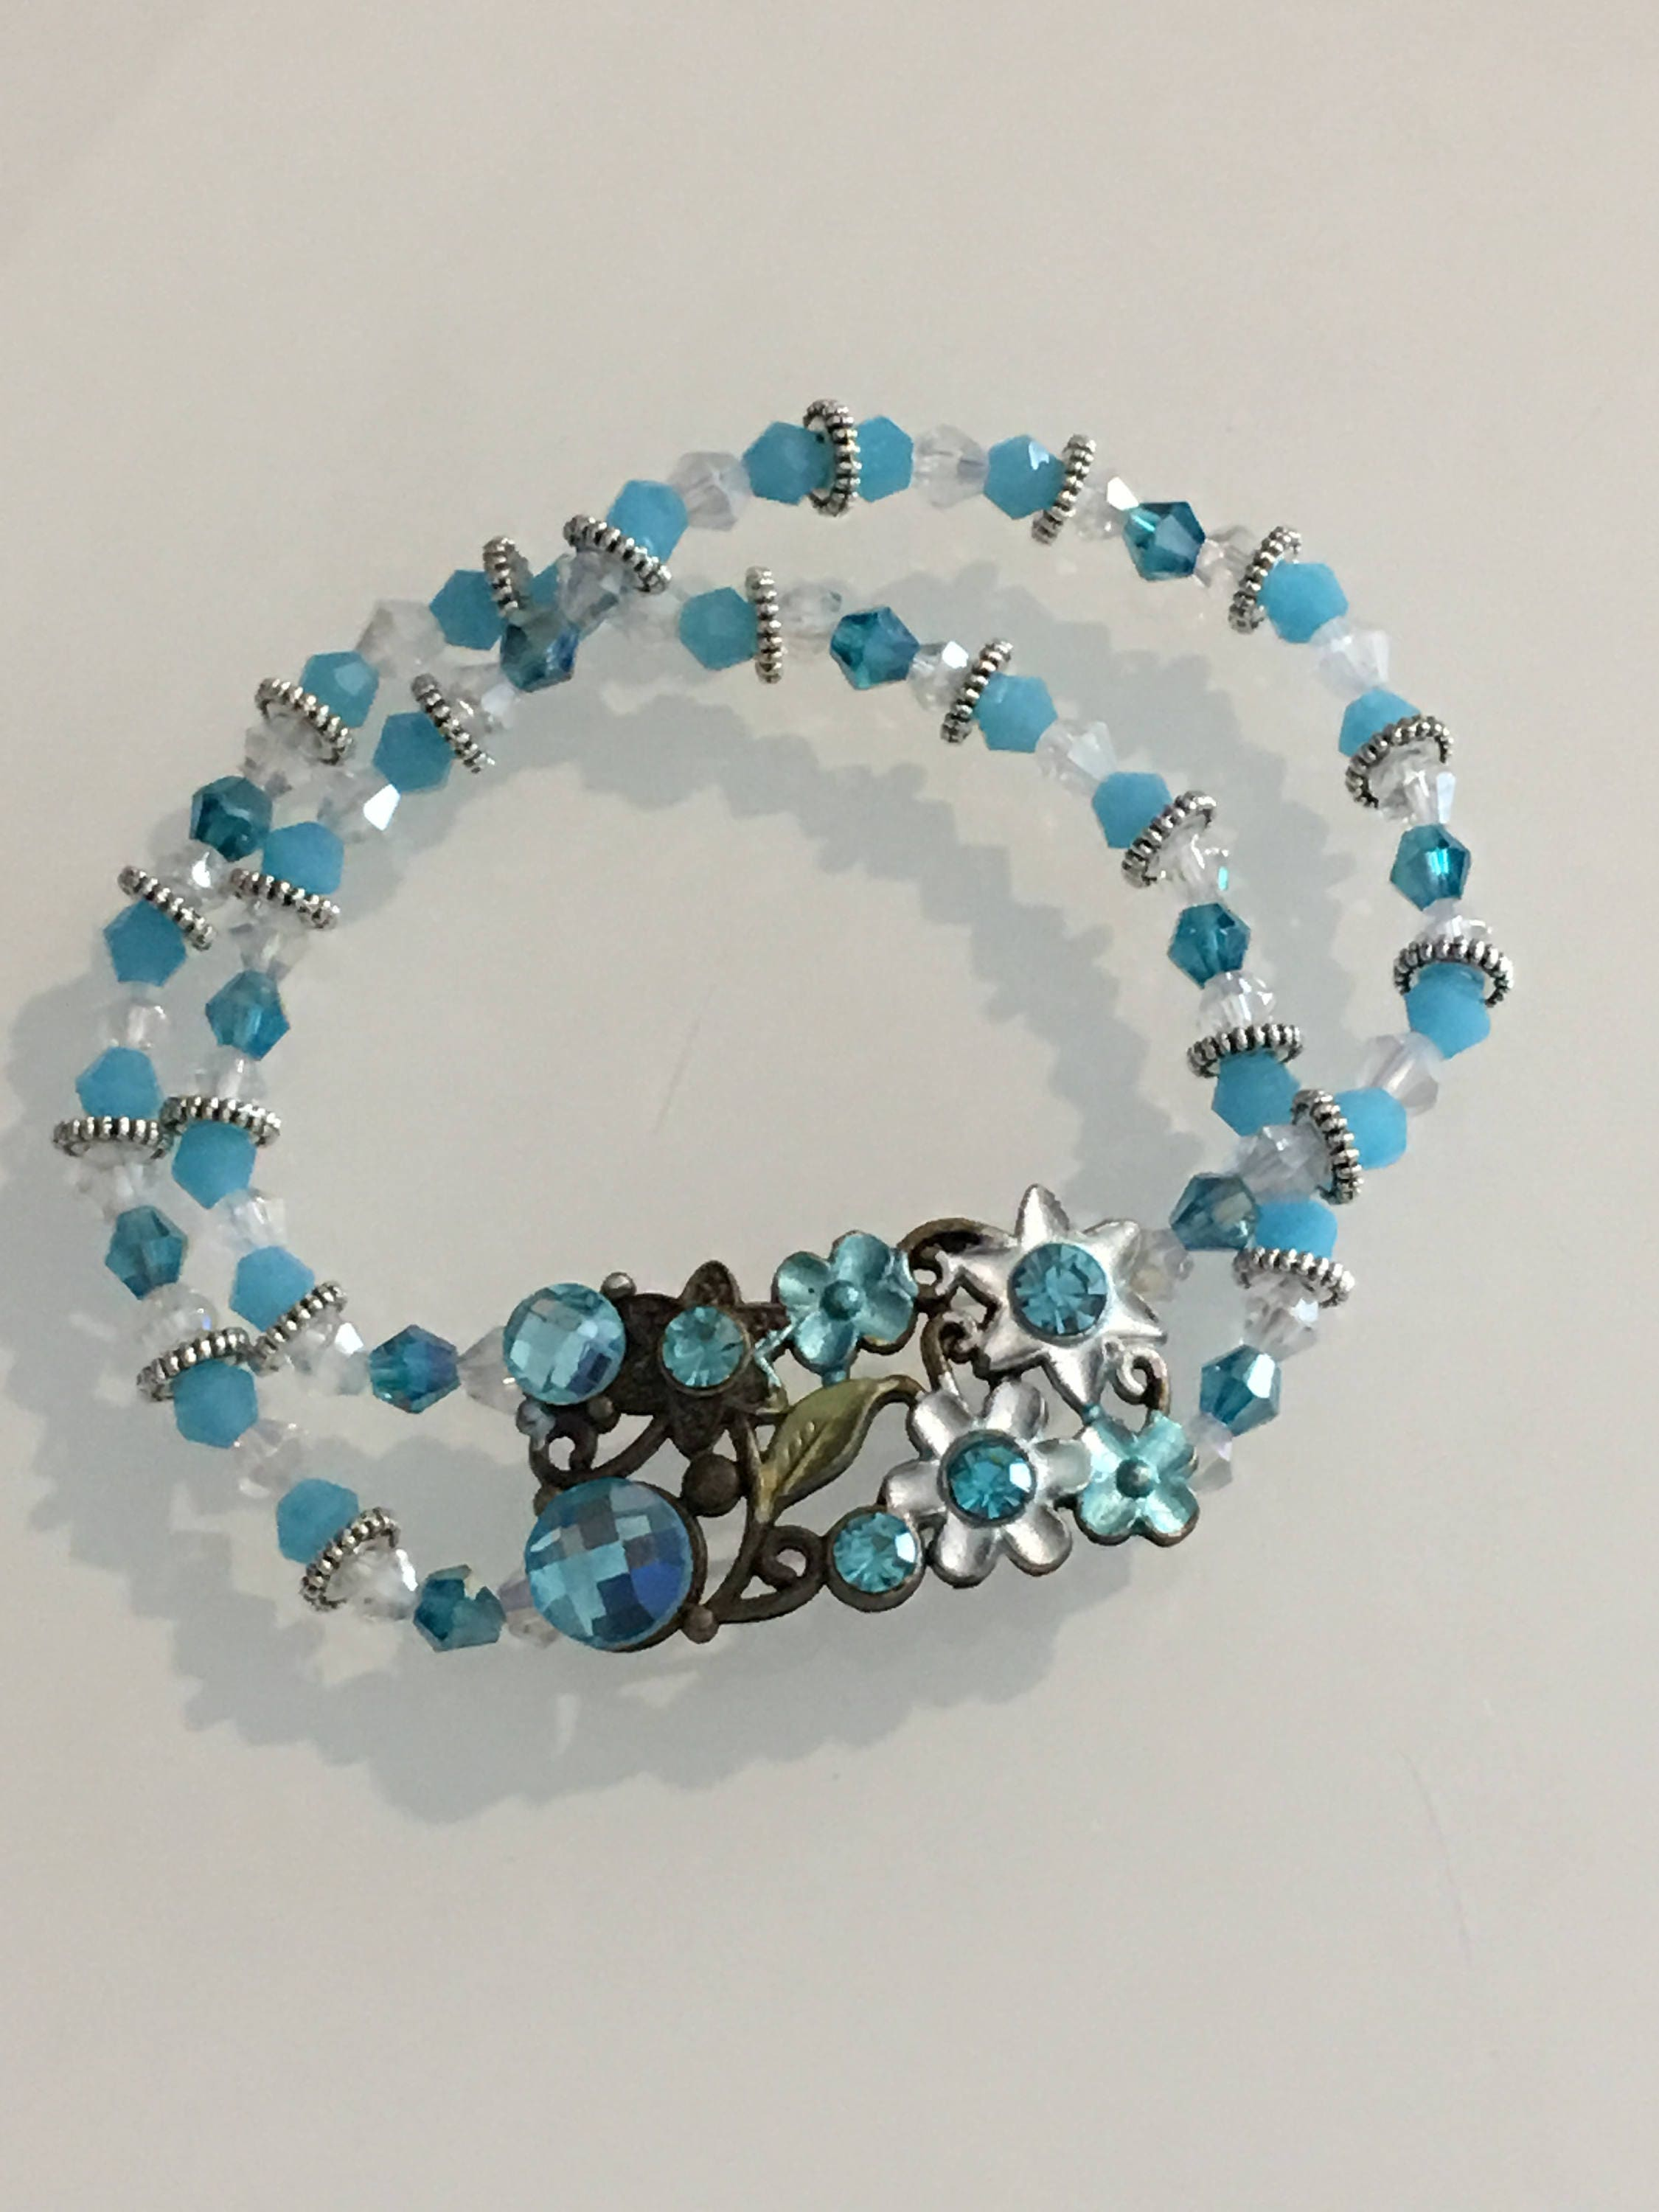 bravelets on help my at hard pin every item is website donated mission people purchased dysautonomia brave times bracelet kendra to bravelet com the be personal during from